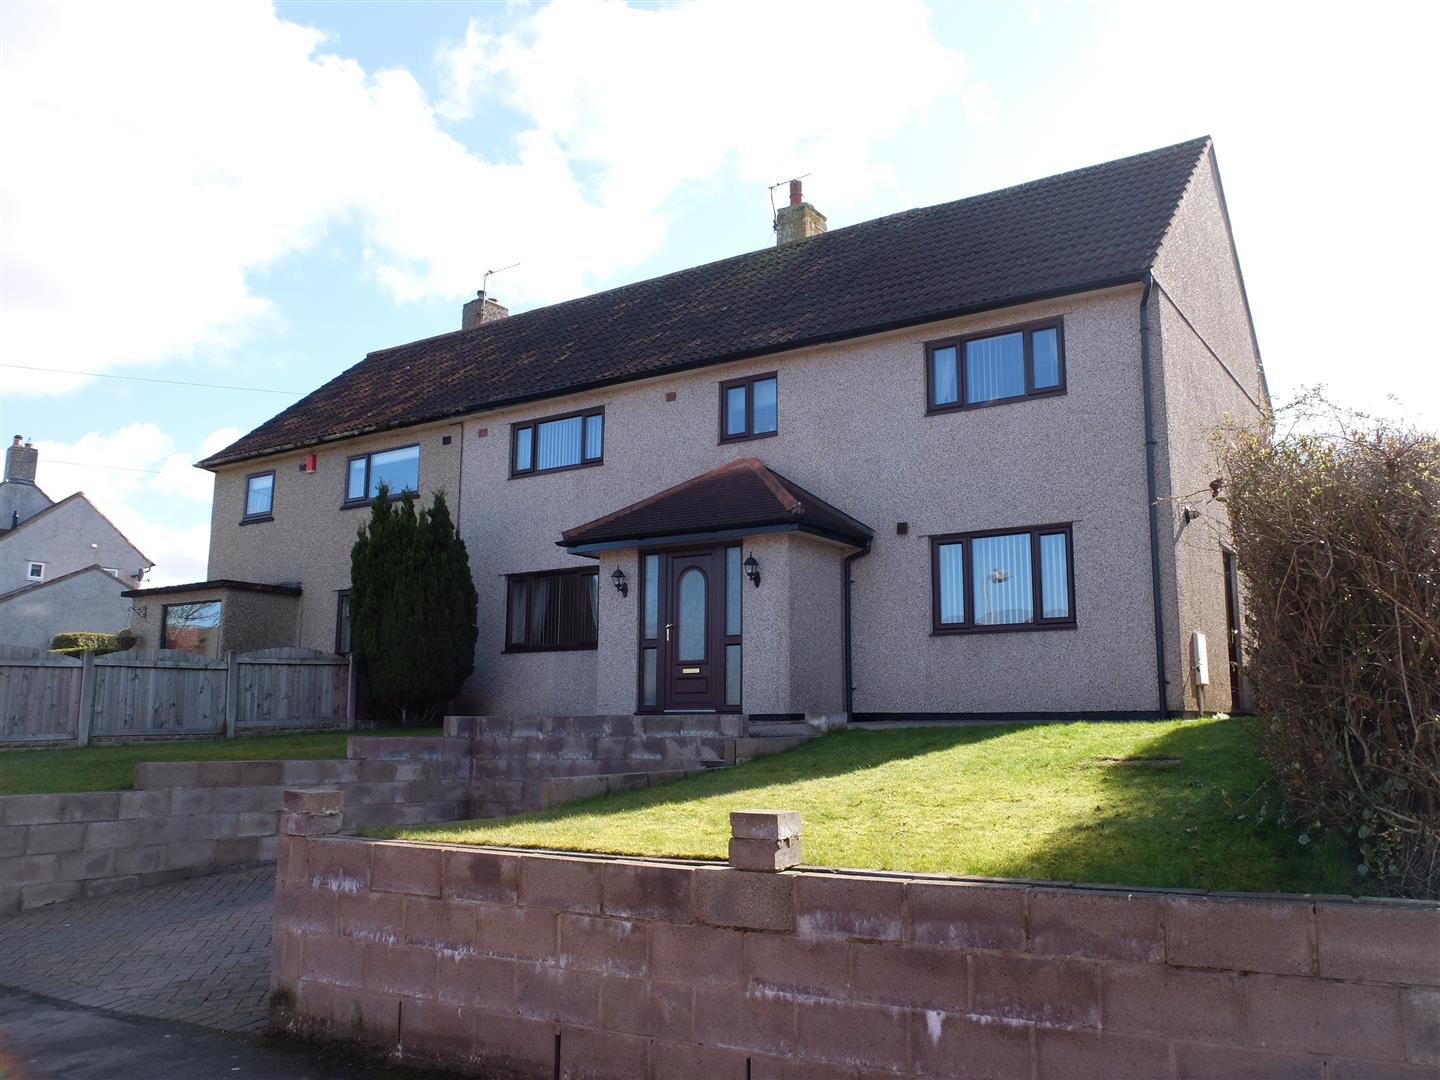 15 Hespek Raise Carlisle 4 Bedrooms House - Semi-Detached For Sale